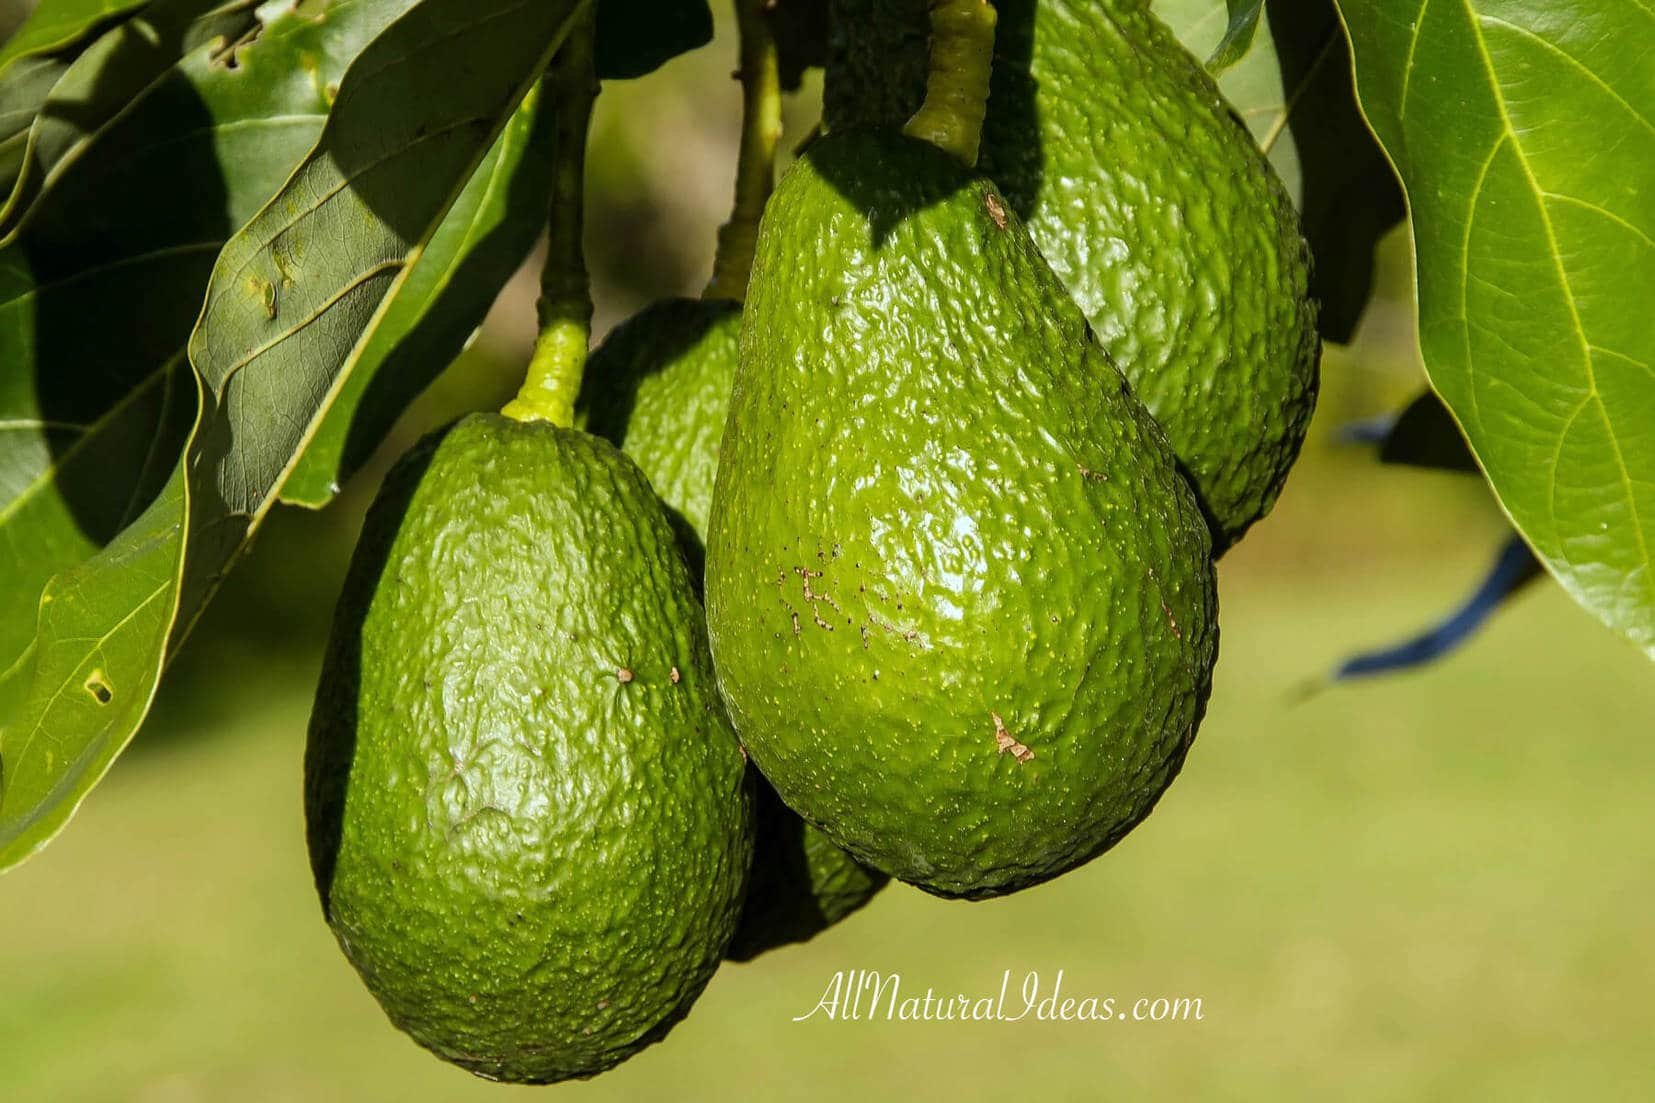 Avocados have many health benefits which makes them a perfect food to consume regularly. Check out some of the top reasons to eat avocados.